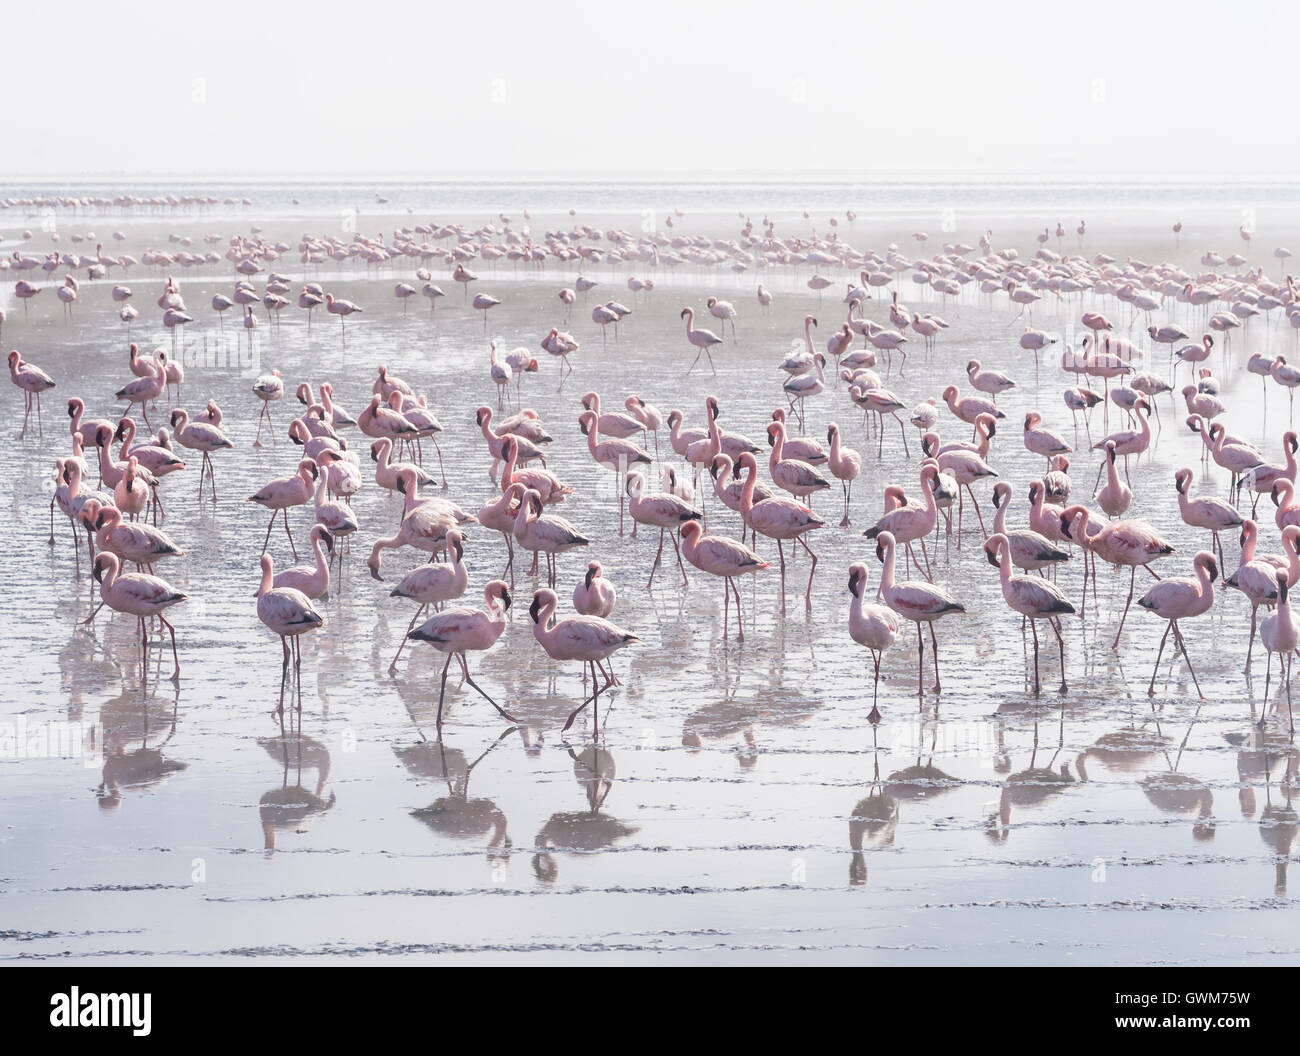 Group of flamingos on Walvis Bay Lagoon. - Stock Image